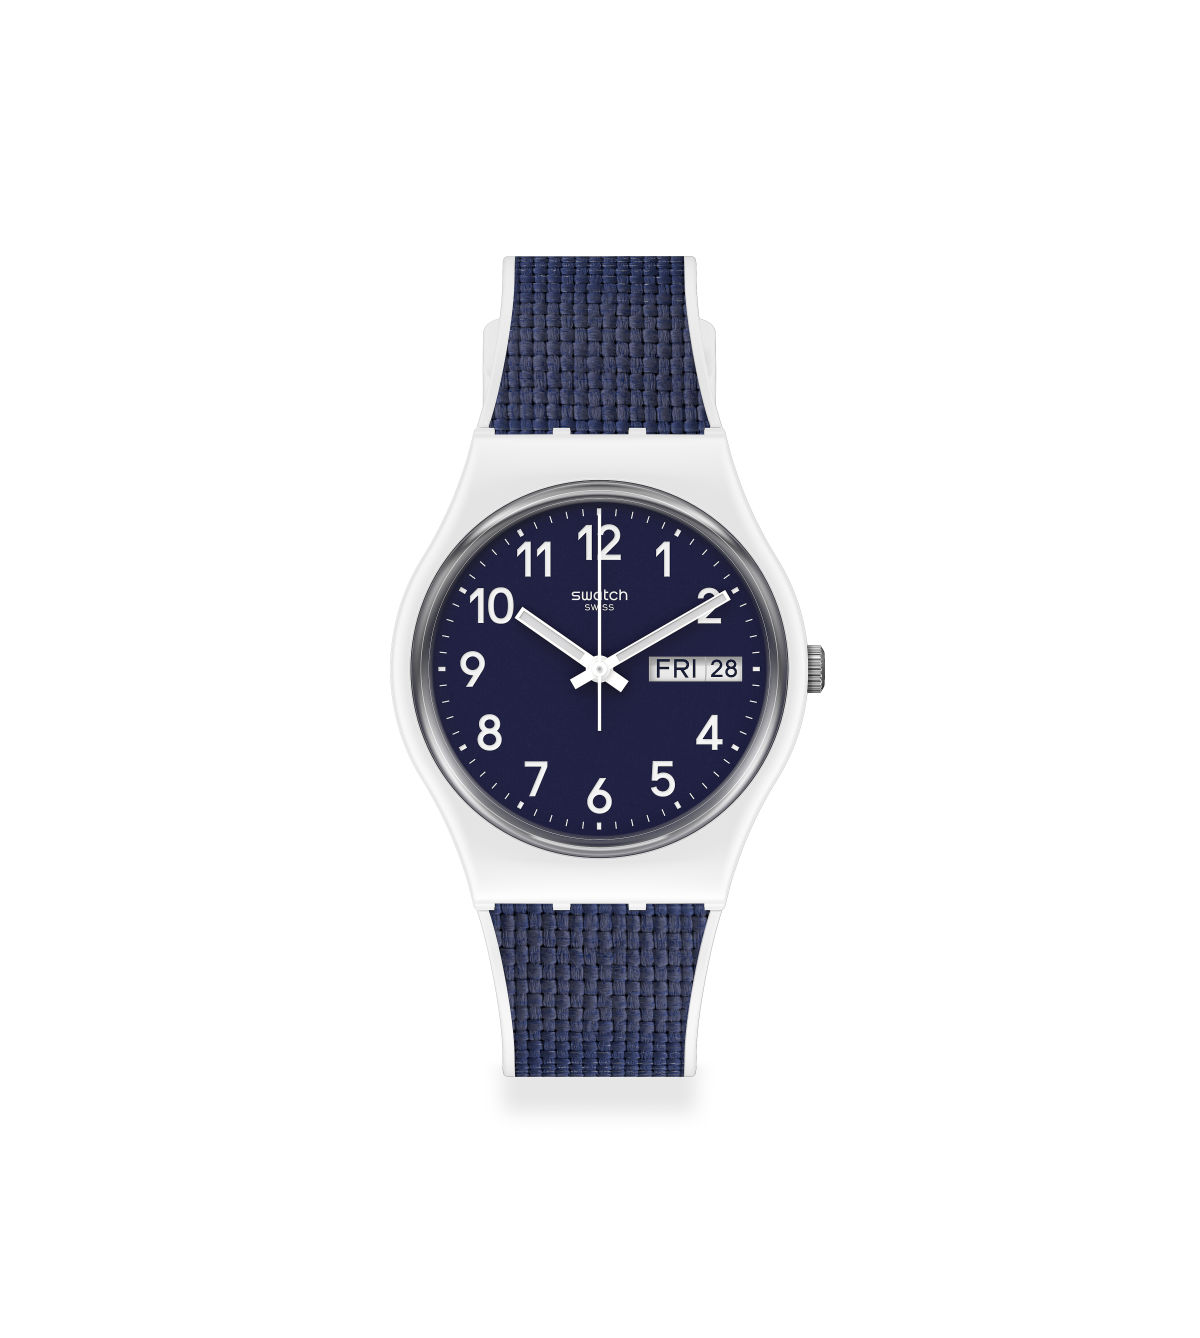 NAVY LIGHT - GW715